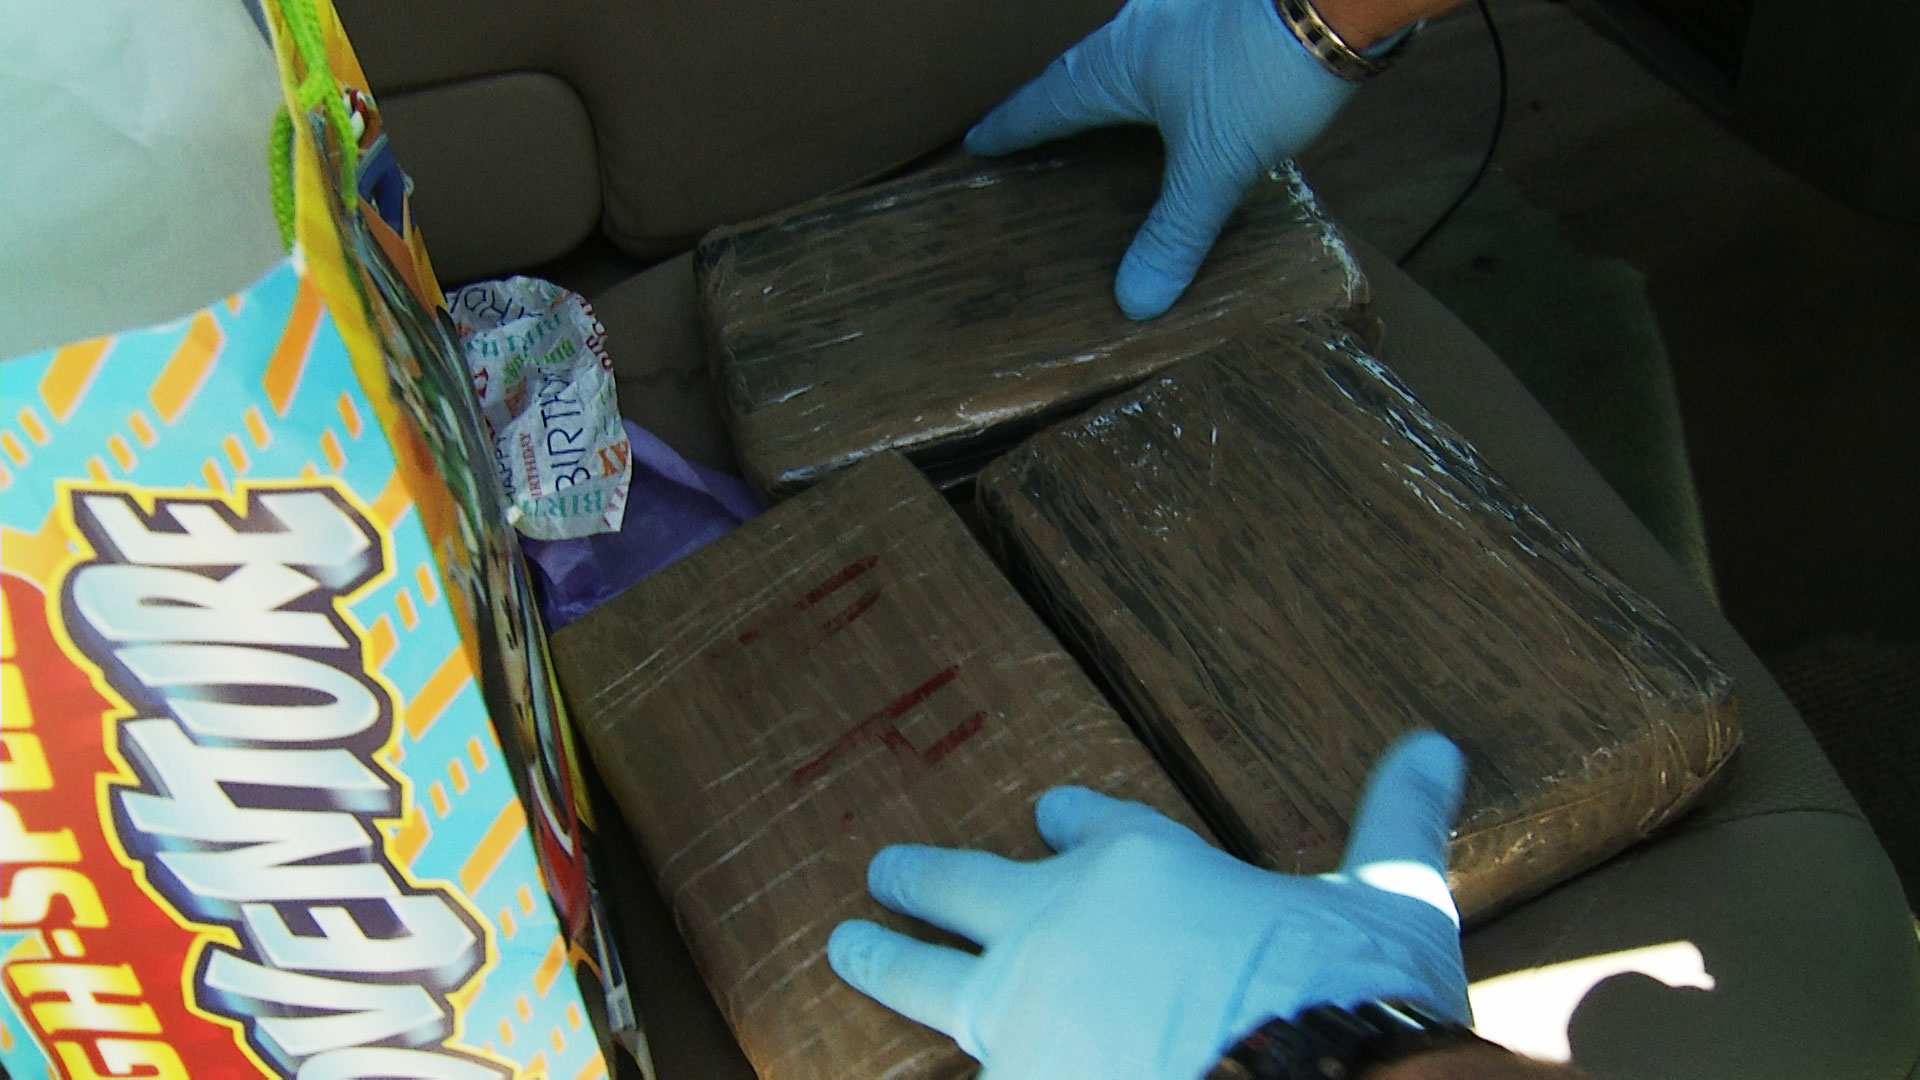 A Pima County Sheriff's deputy removes wrapped bundles of cocaine discovered hidden in a gift bag during a traffic stop in June 2019.